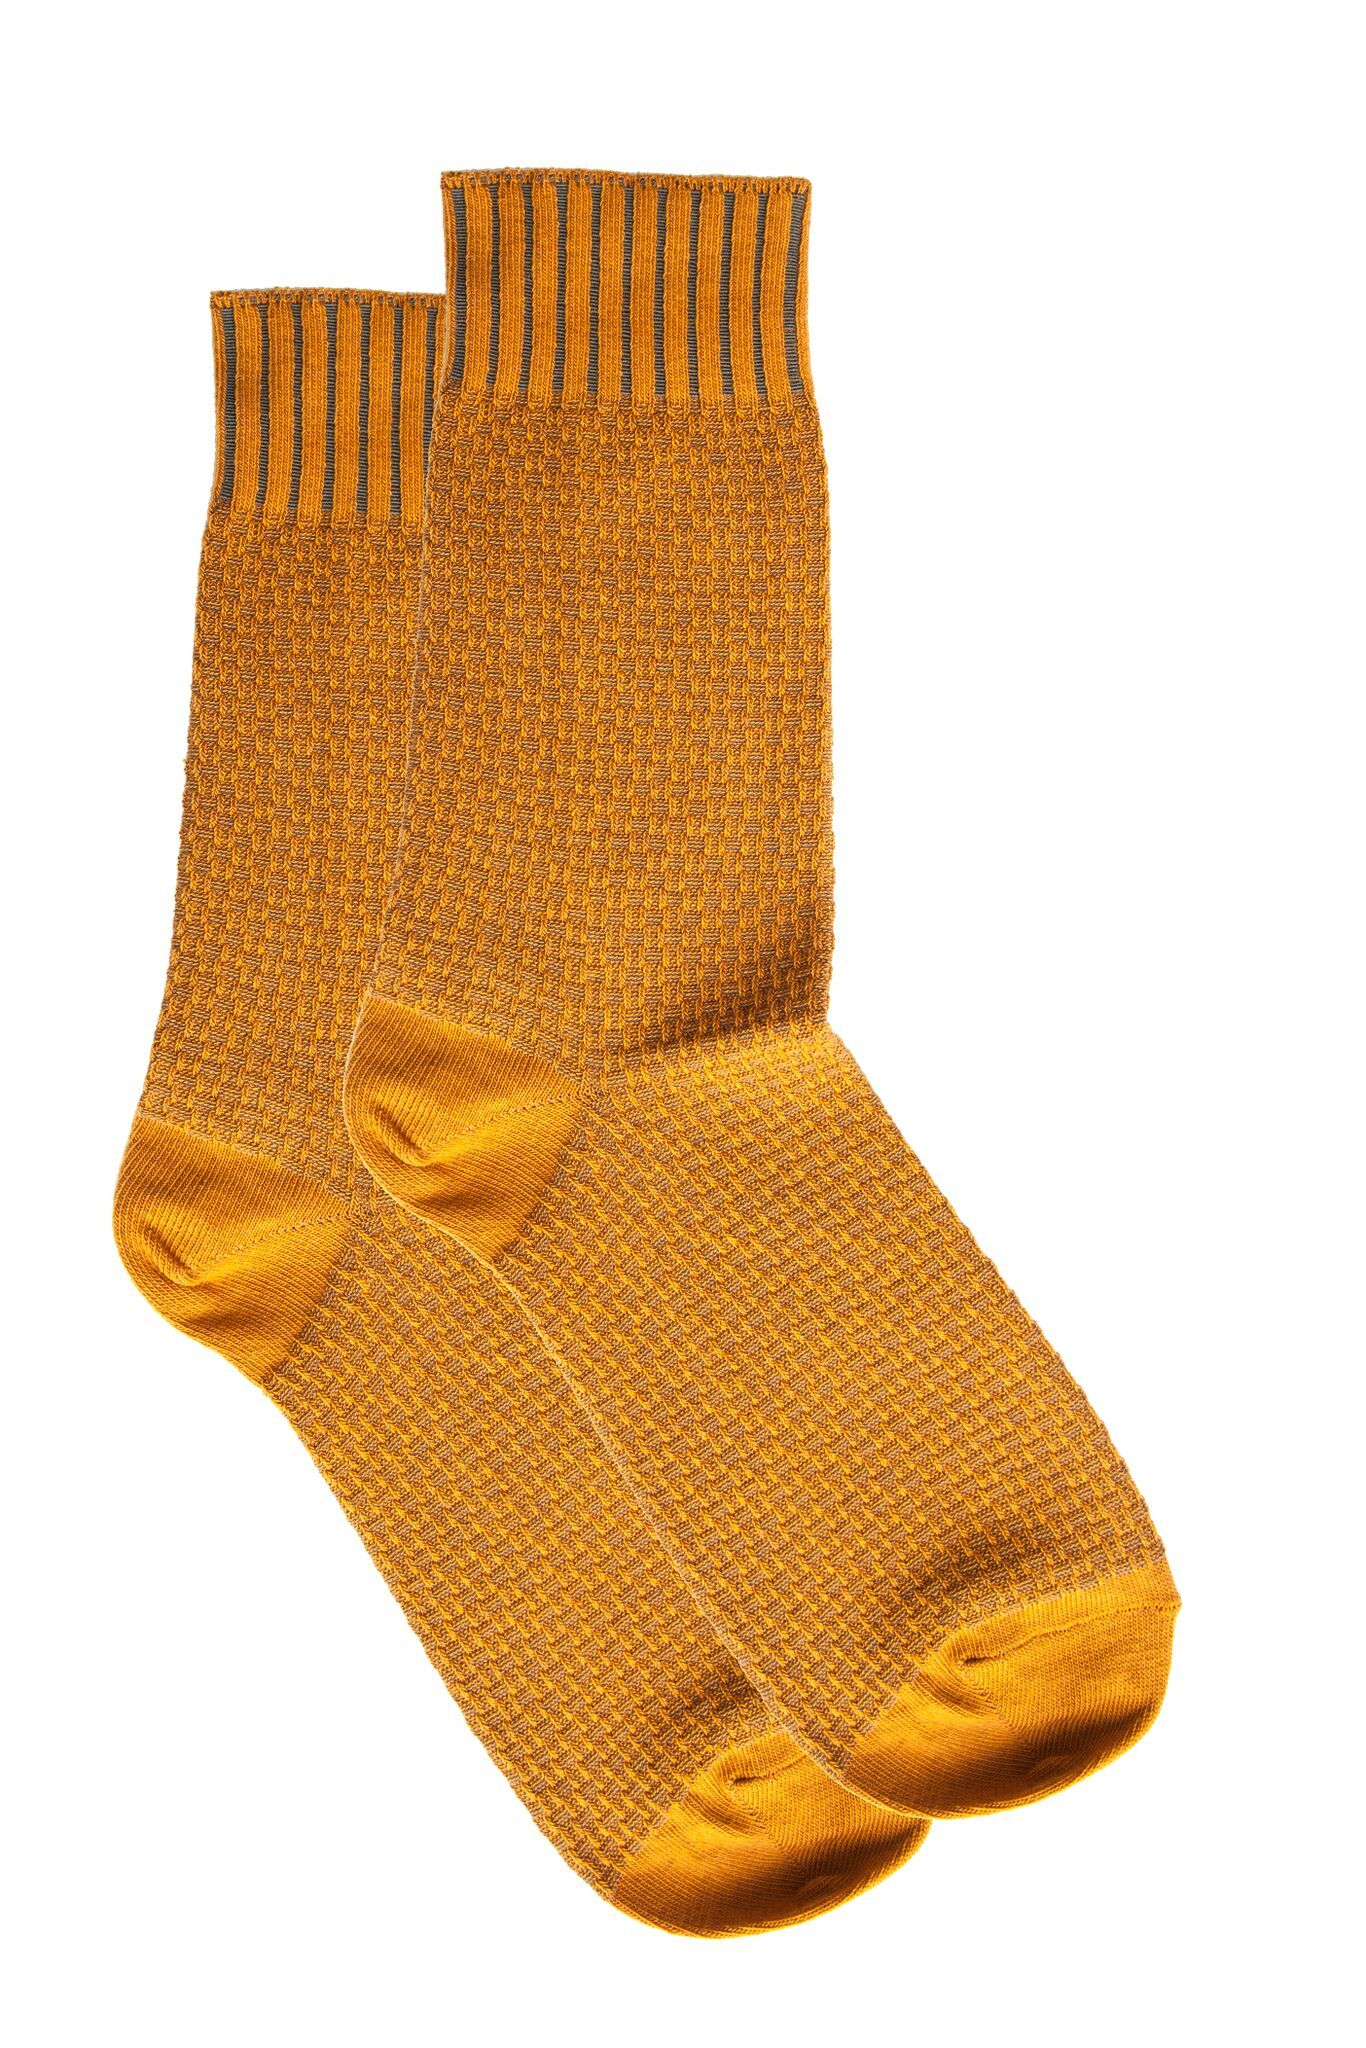 Sparks Sock Dark Honey Sock MP Crafted Garments - der ZEITGEIST